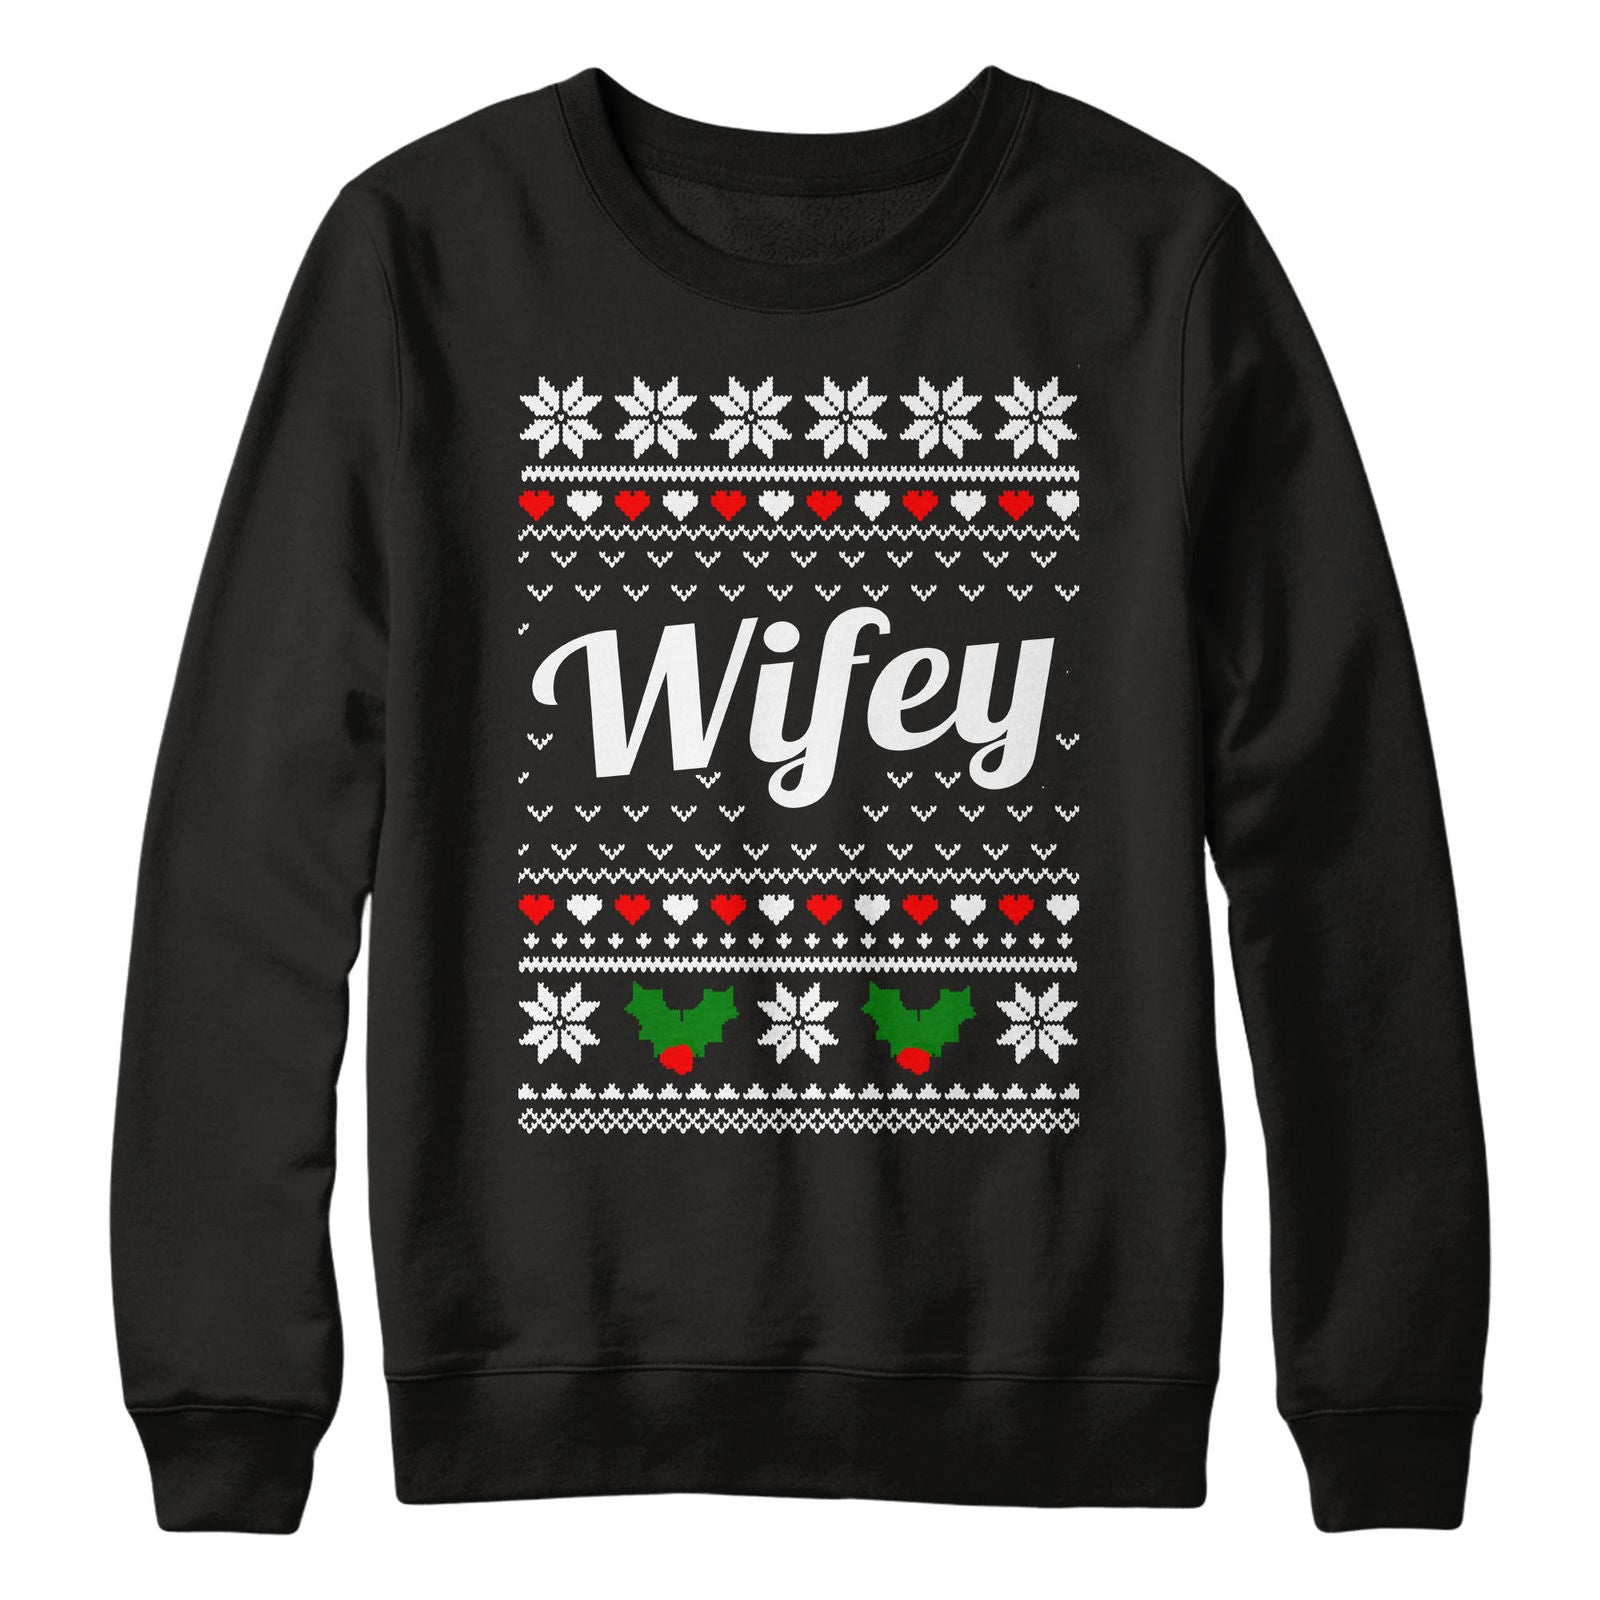 Hubby \u0026 Wifey Christmas Jumpers Sweaters Unisex Just Married